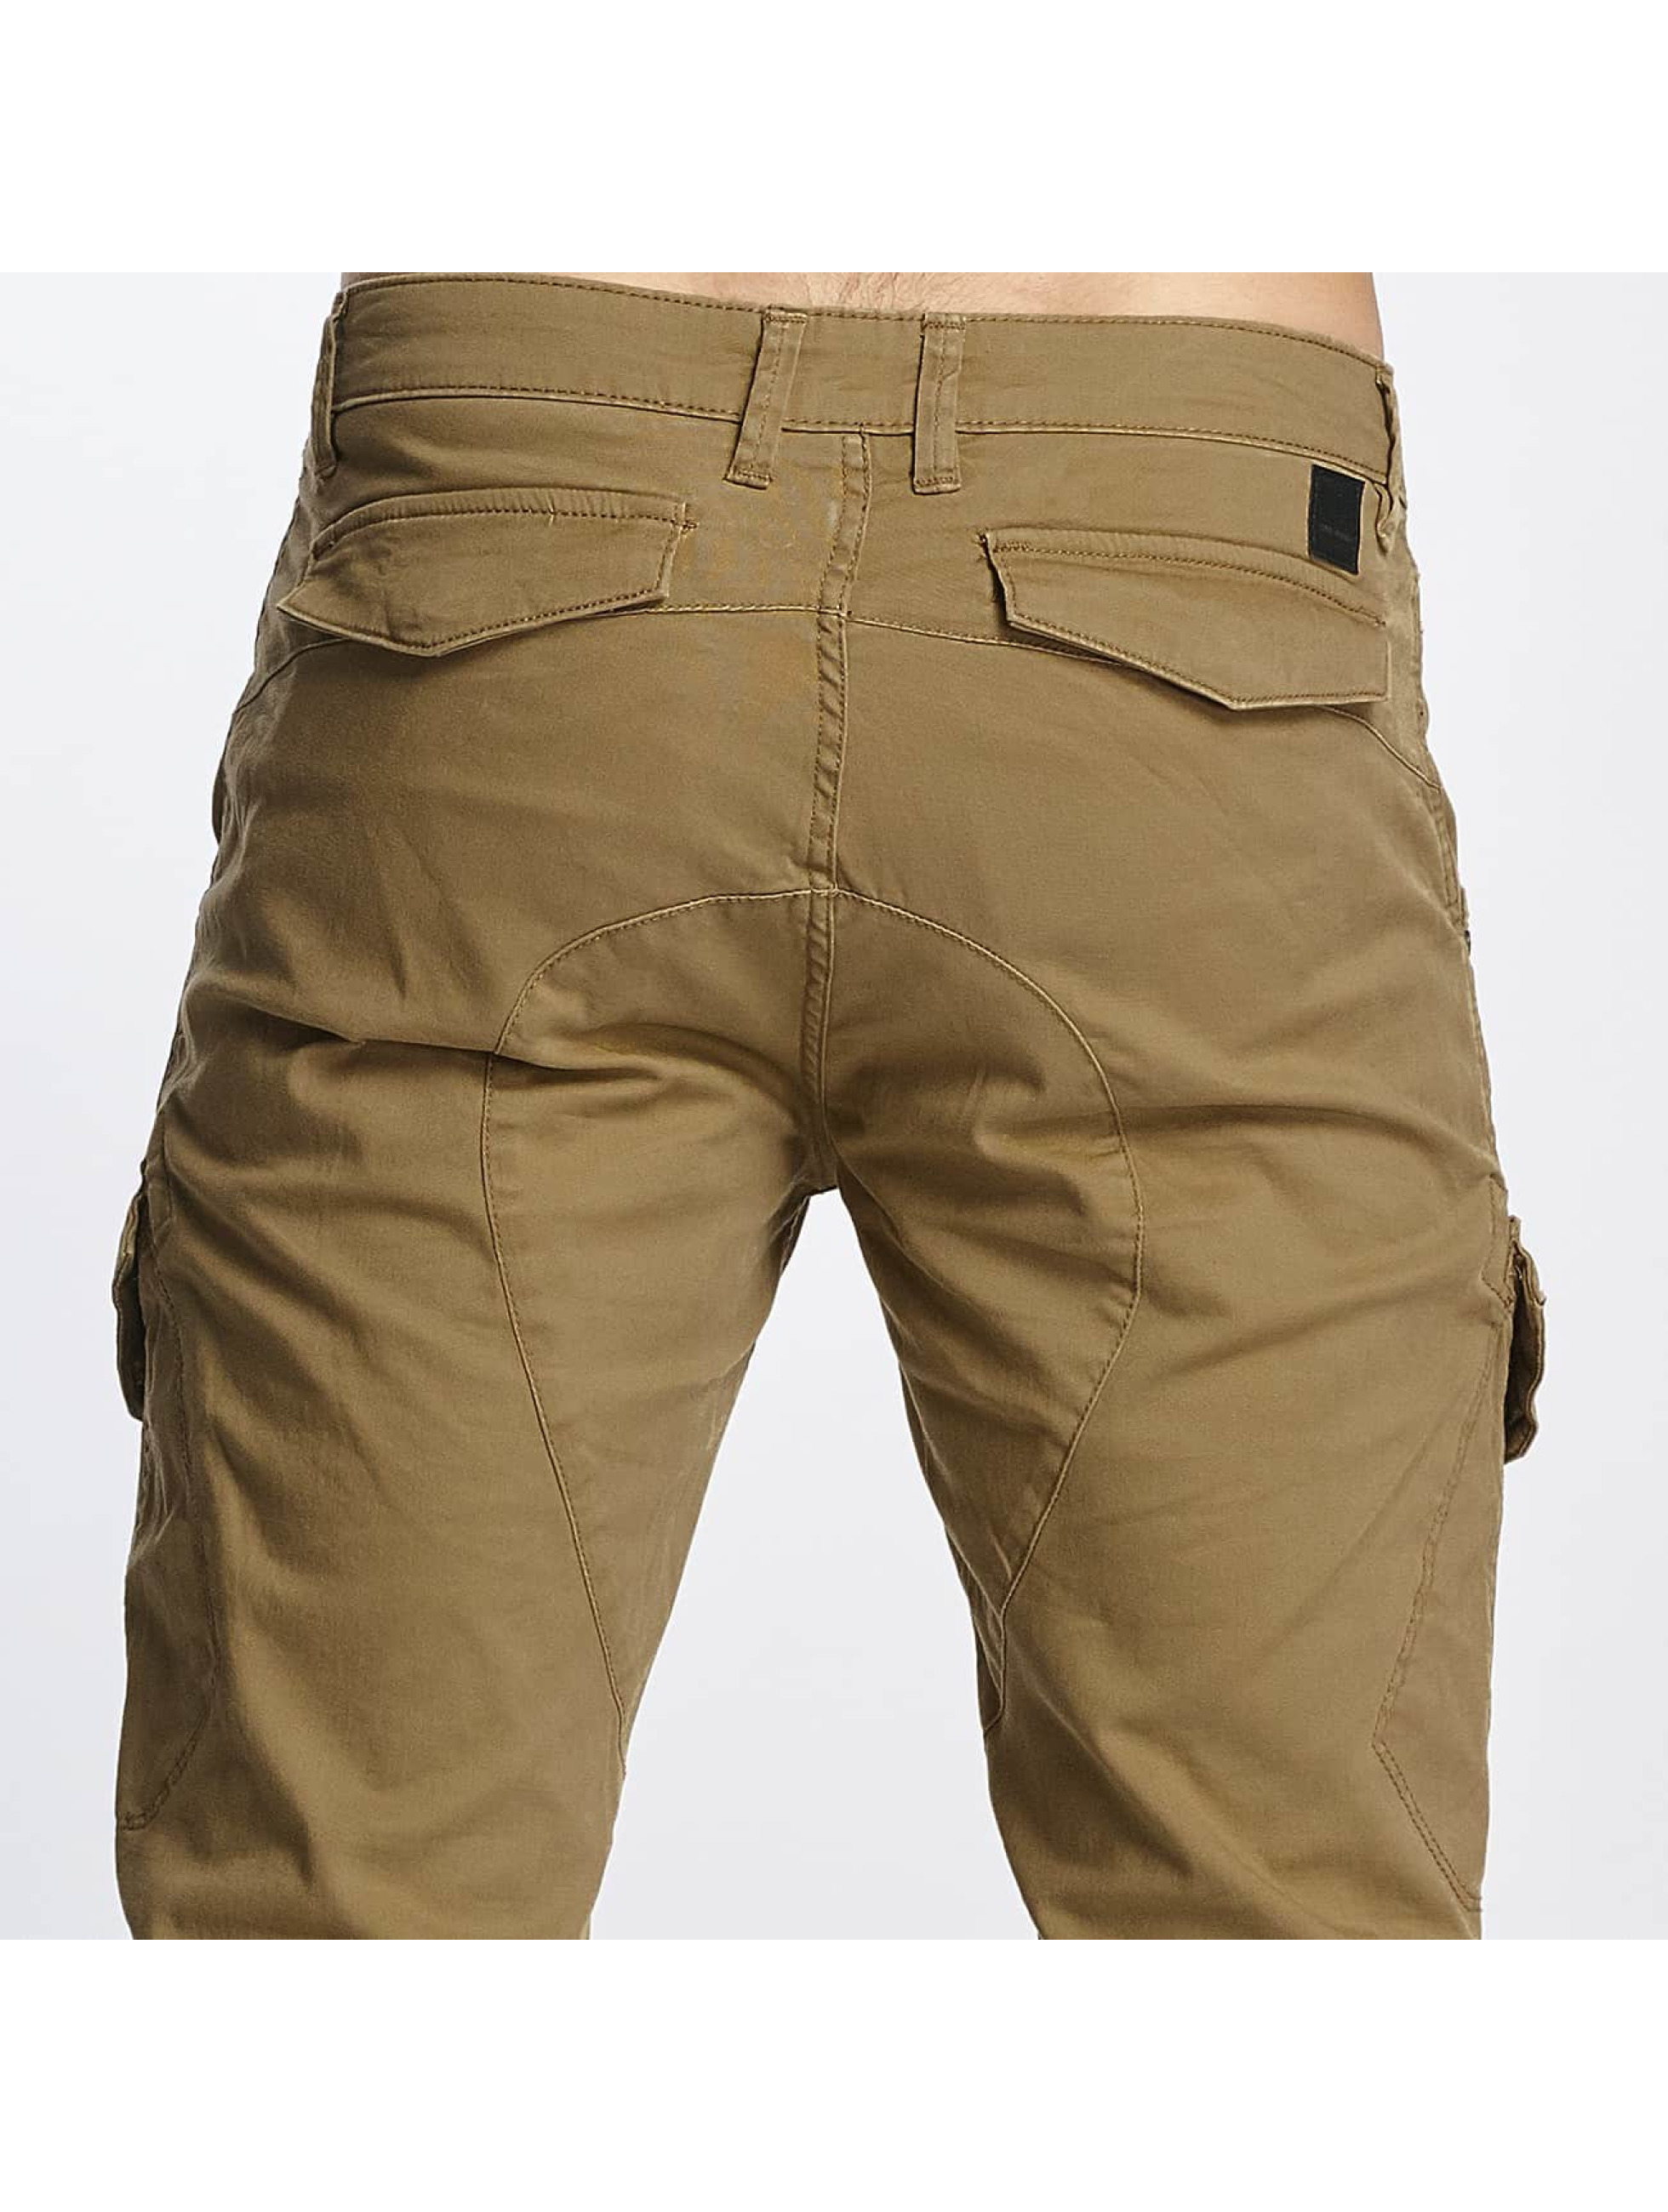 SHINE Original Cargo pants Slim beige